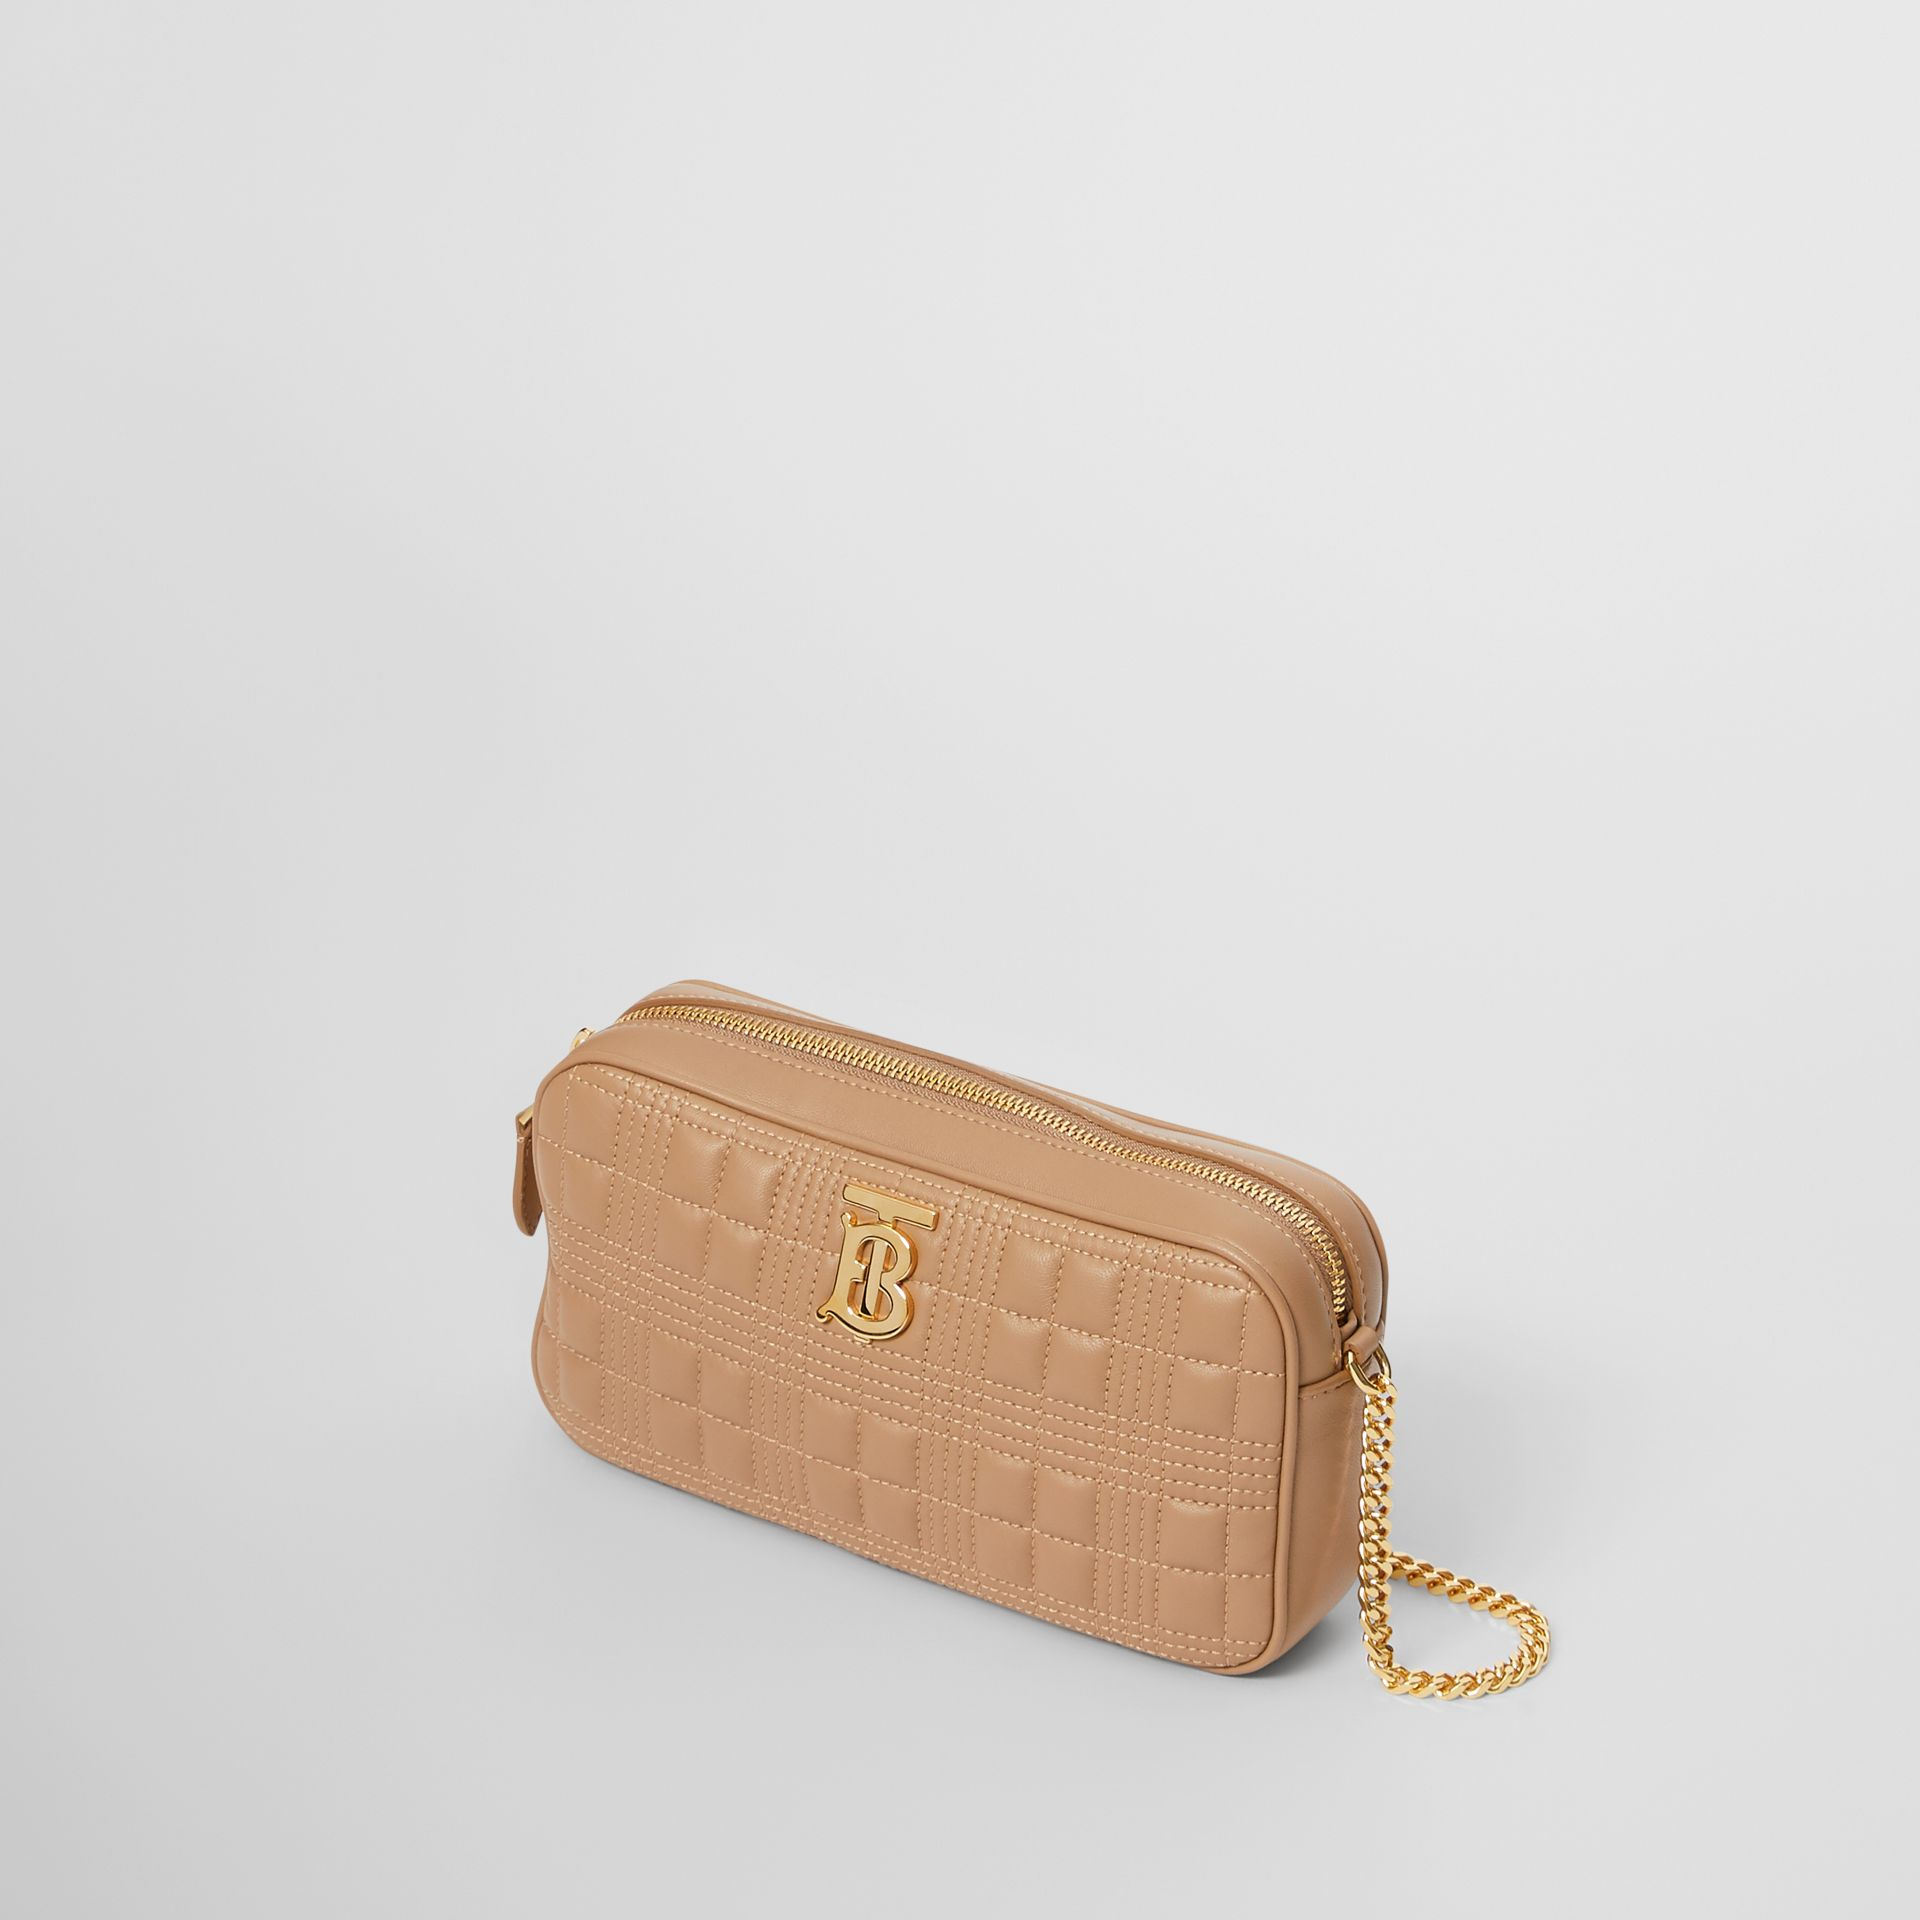 Quilted Lambskin Camera Bag in Camel - Women | Burberry - gallery image 3